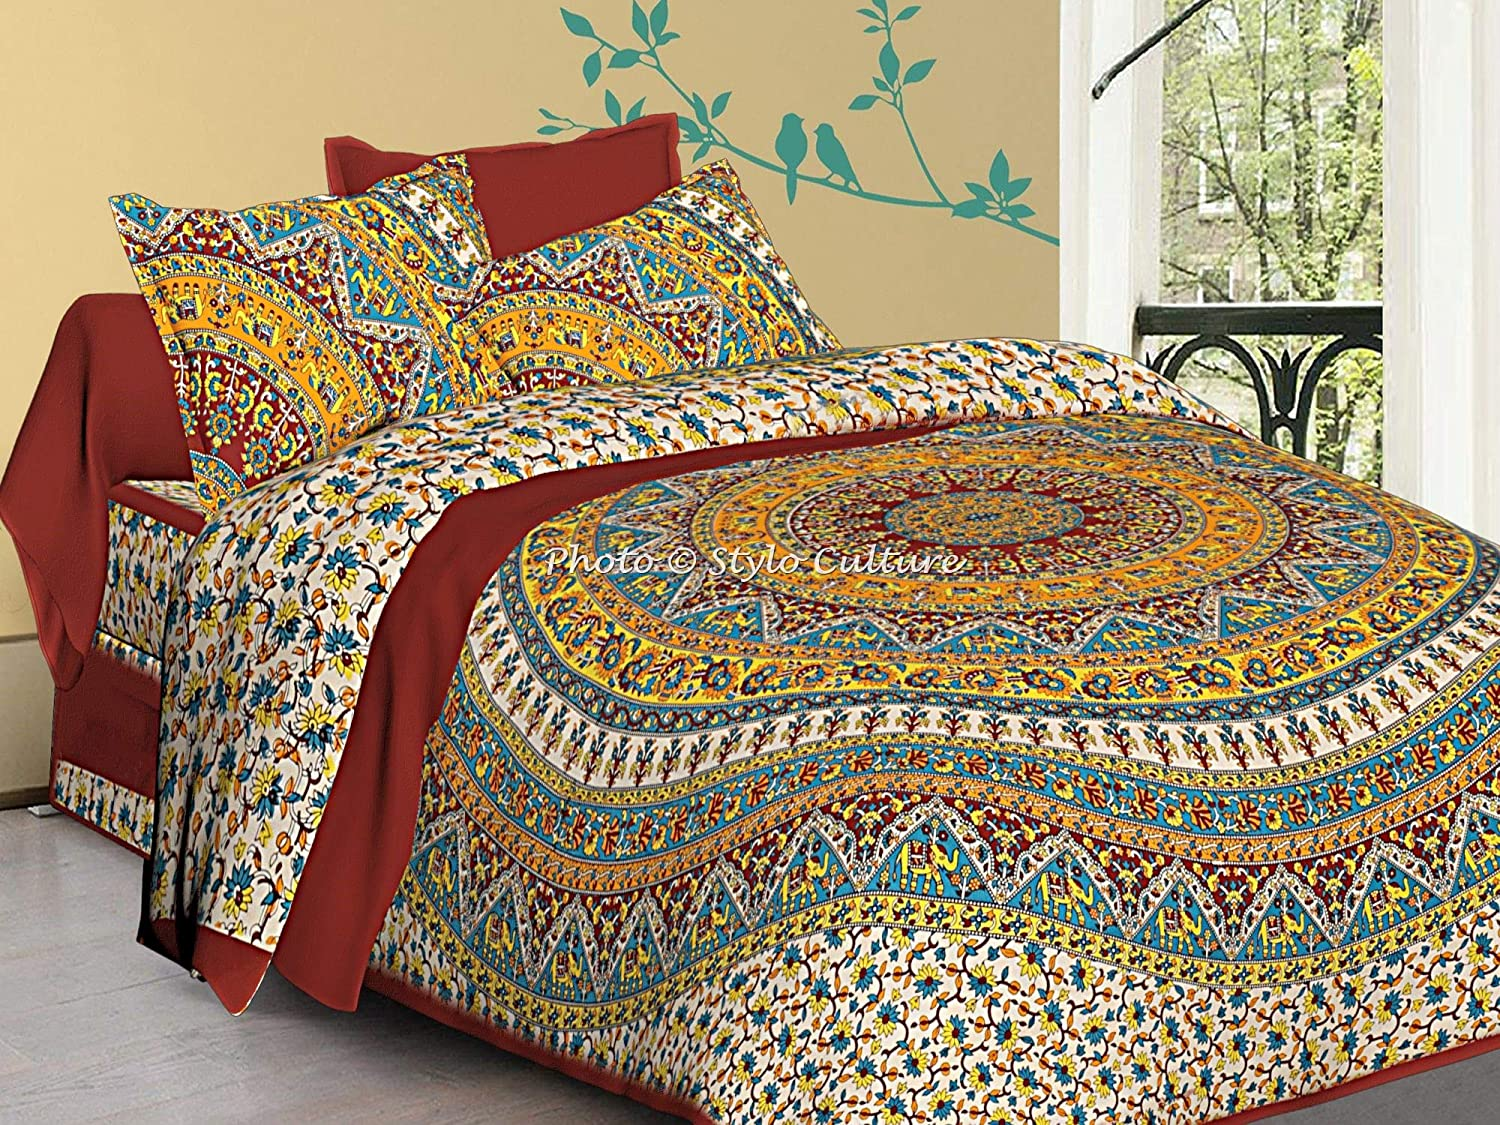 Queen Size Elephant Indian Mandala Duvet Cover Quilt New Bedding Covers Blanket